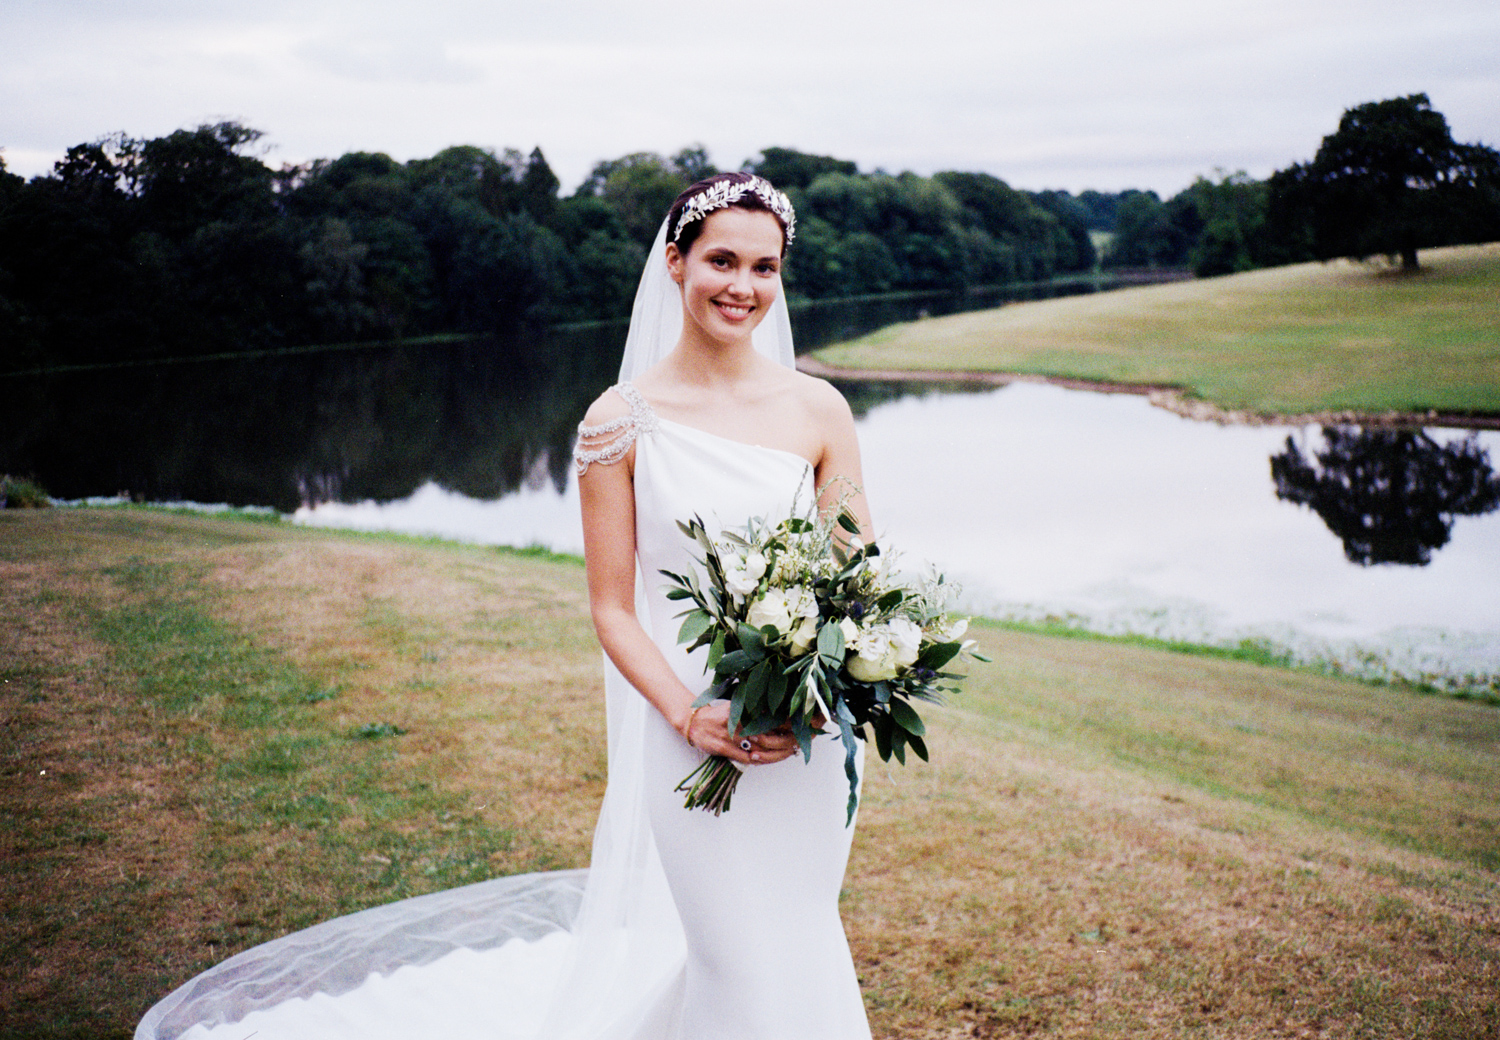 Photographing with film at weddings - a bride with flowers